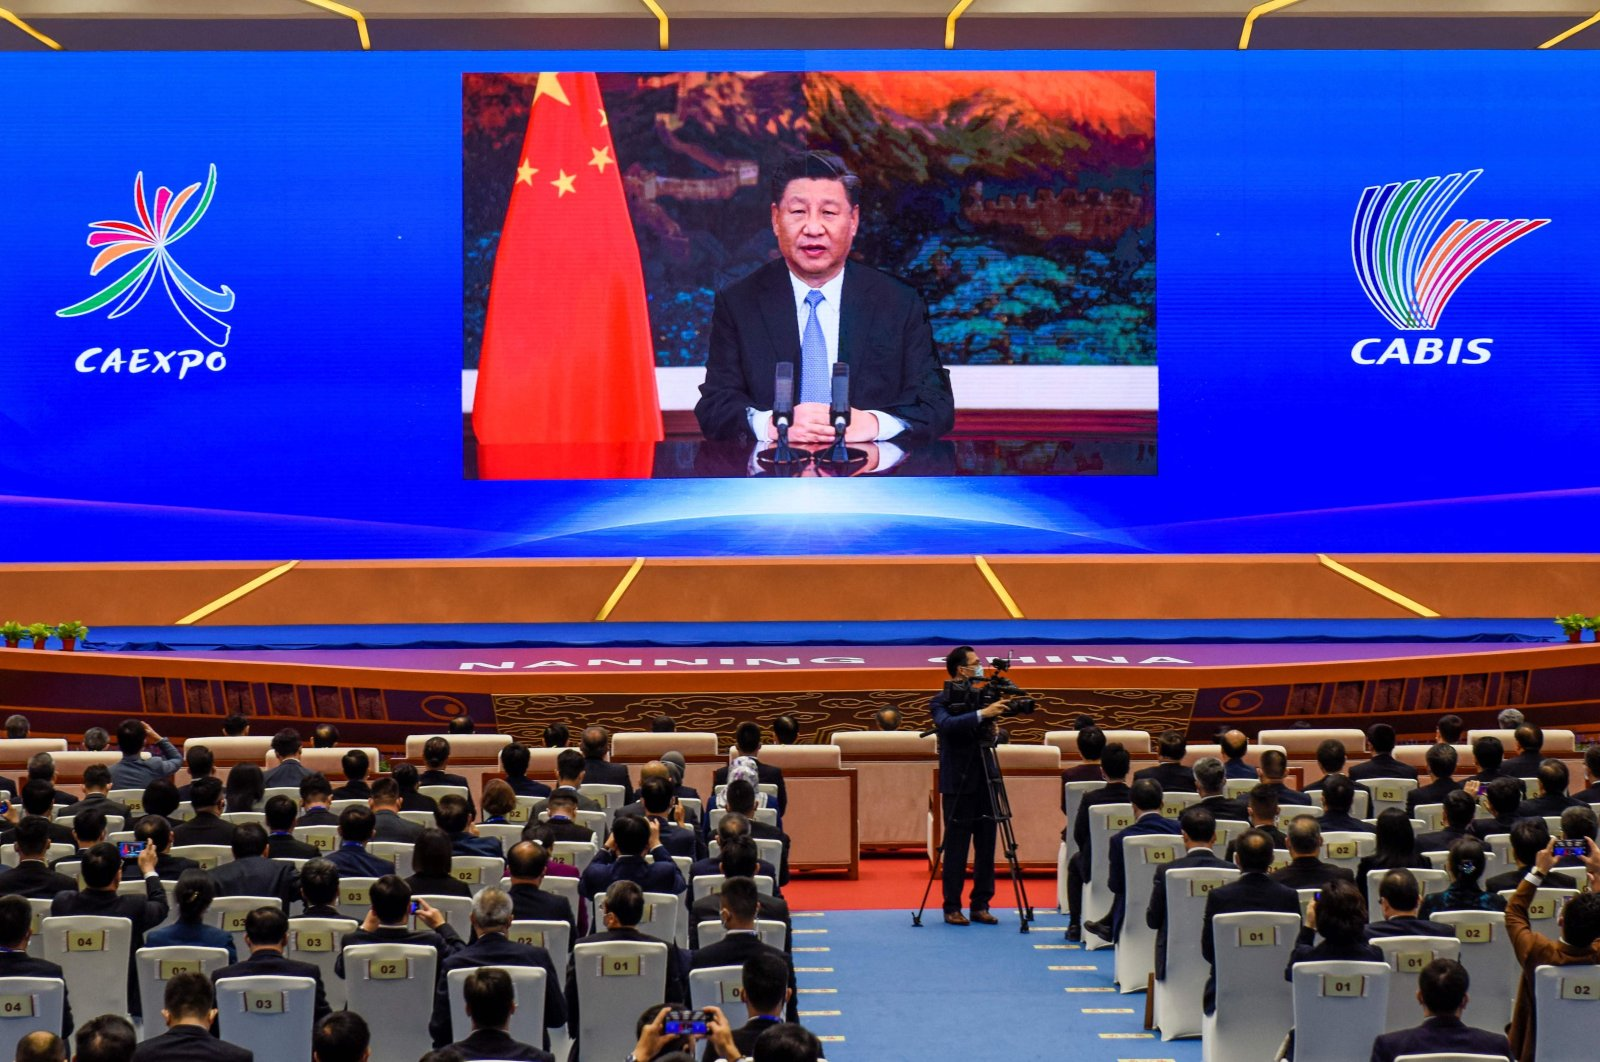 Chinese President Xi Jinping delivers a speech via video at the opening ceremony of the 17th China-ASEAN (Association of Southeast Asian Nations) Expo in Nanning, in southern China's Guangxi province, Nov. 27, 2020. (AFP Photo)